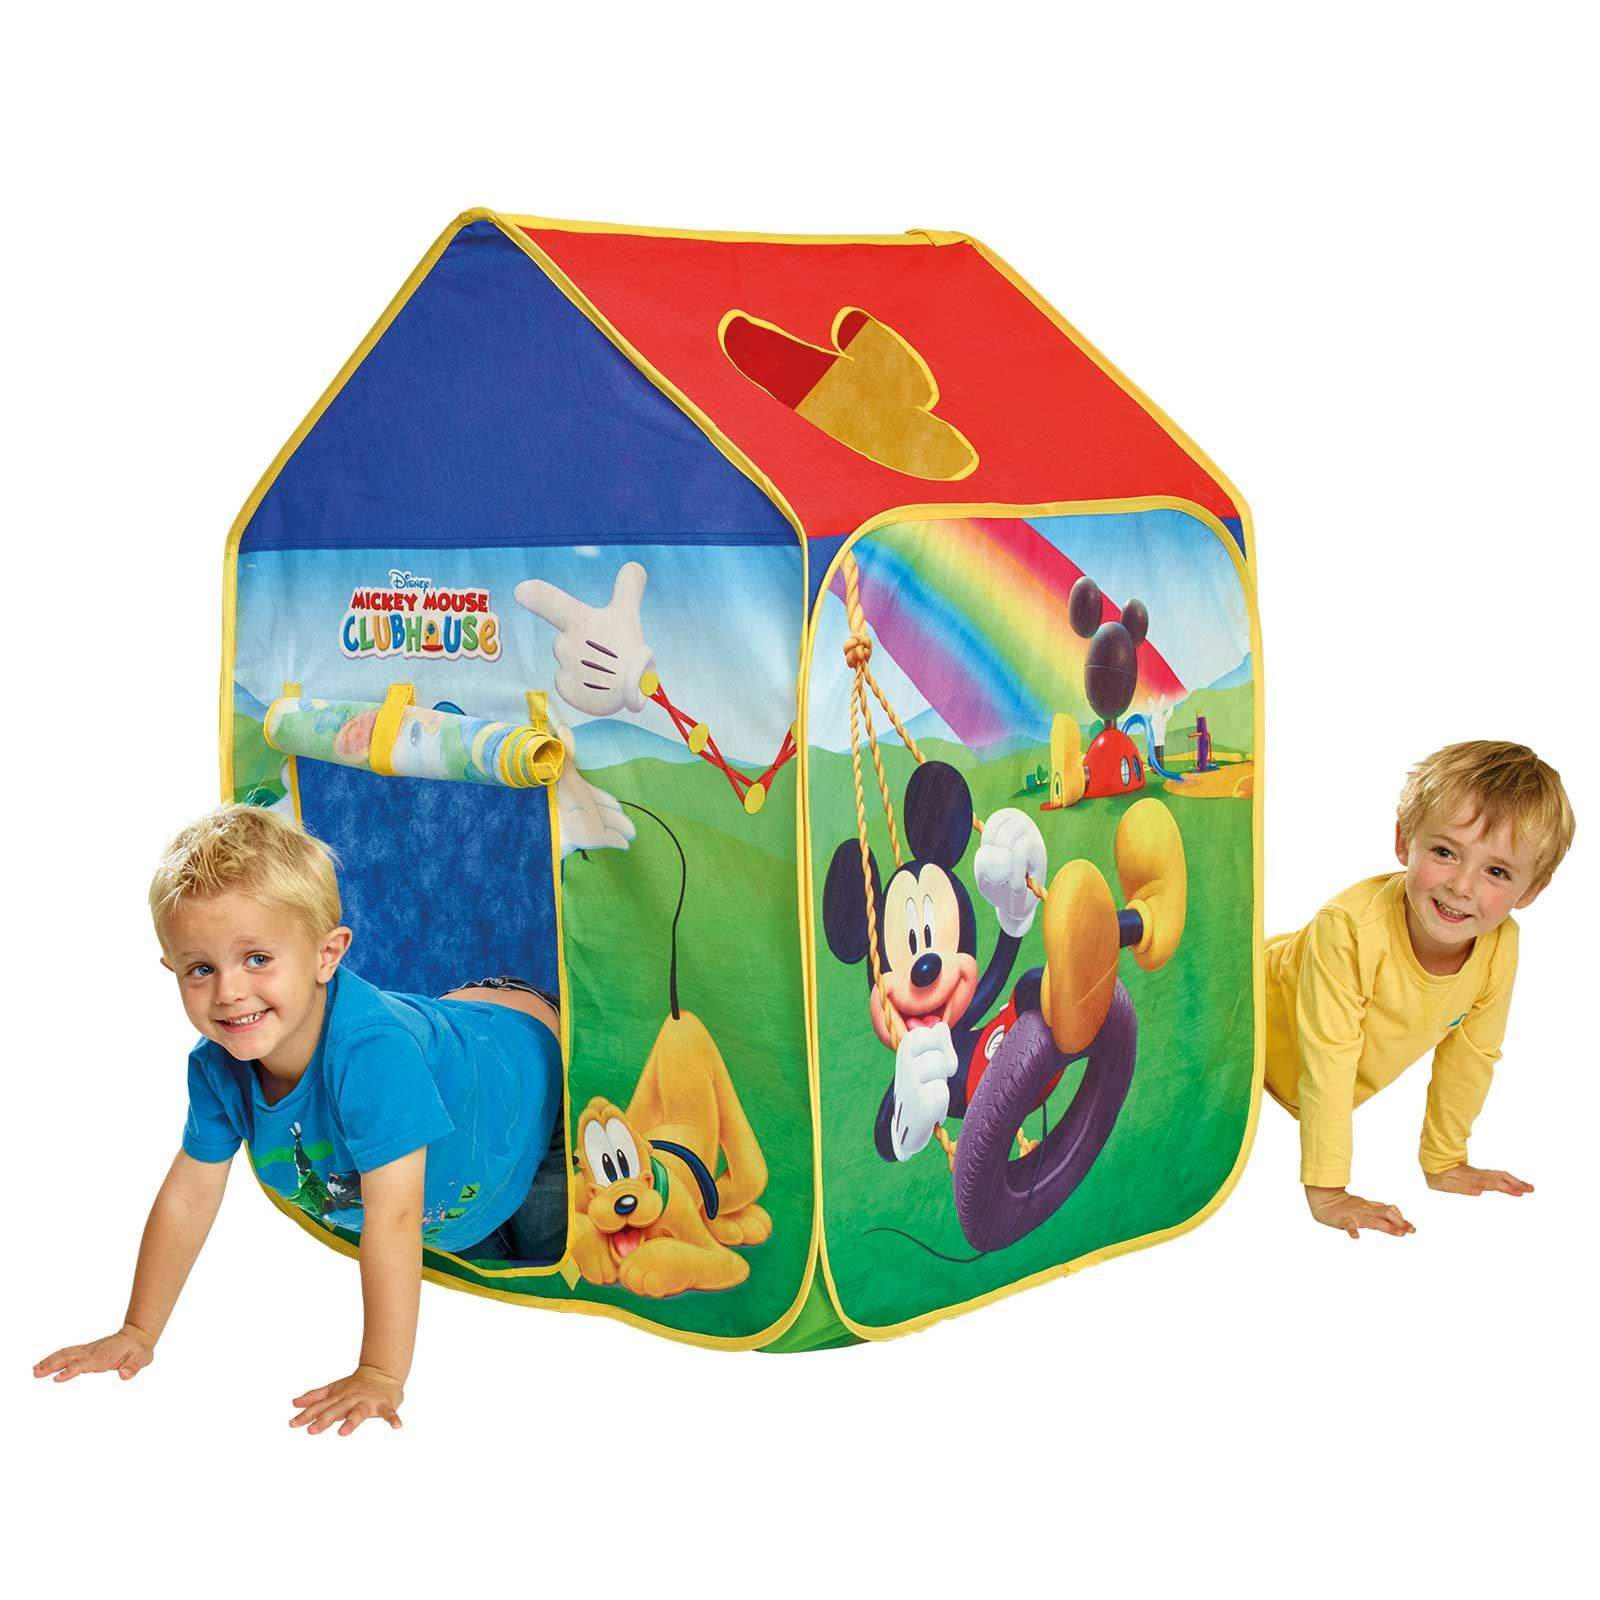 CHILDRENS CHARACTER POP UP PLAY TENTS WENDY HOUSES INDOOR OUTDOOR